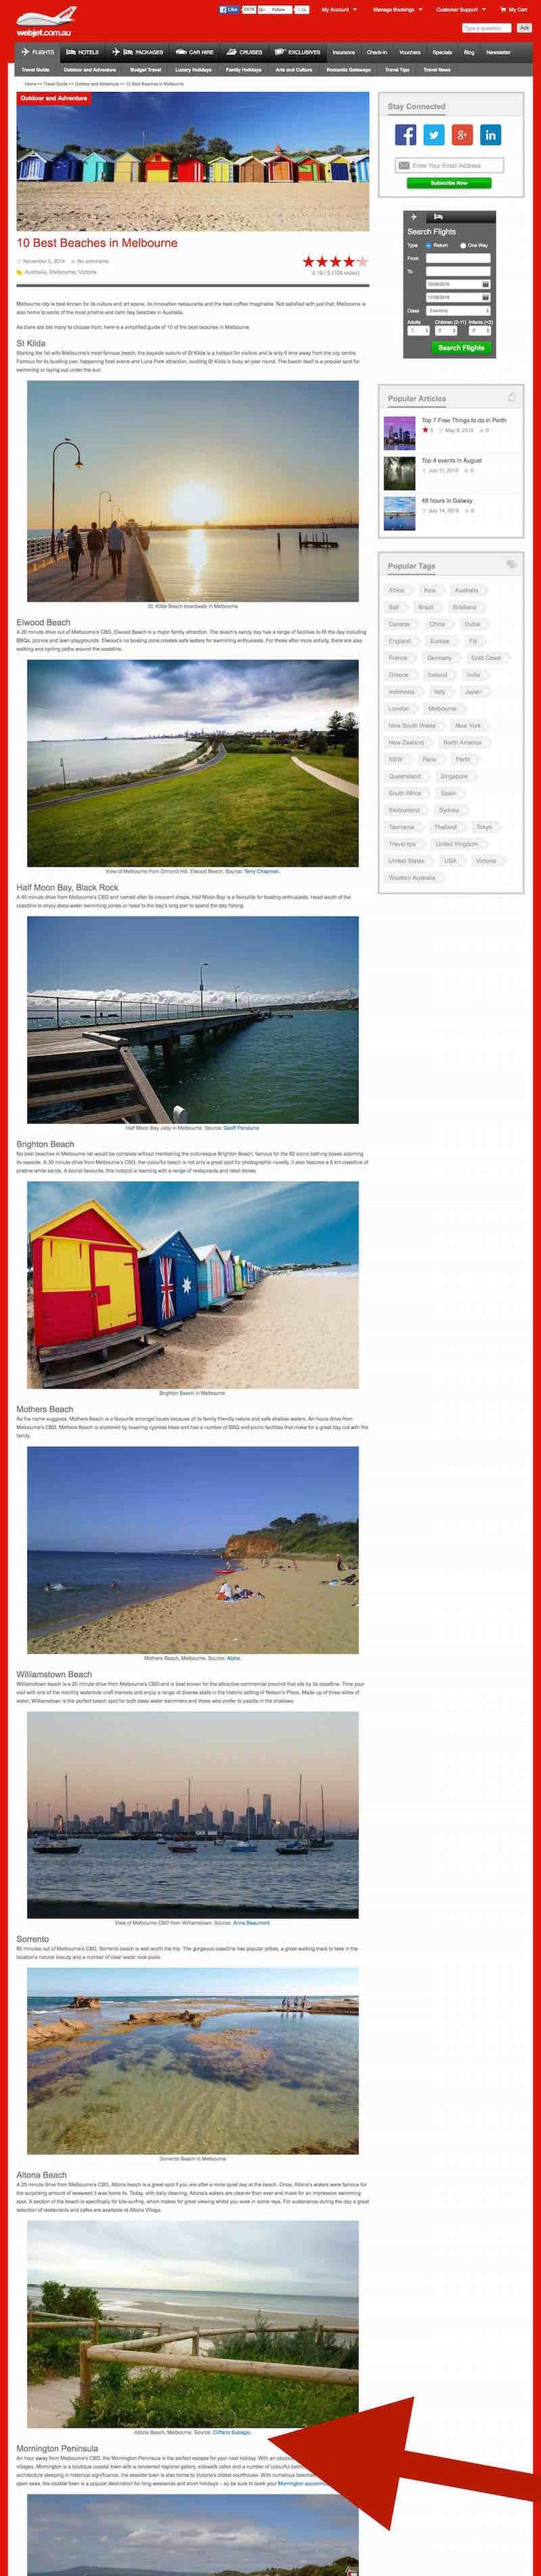 Webjet.com.au - 10 Best Beaches in Melbourne.